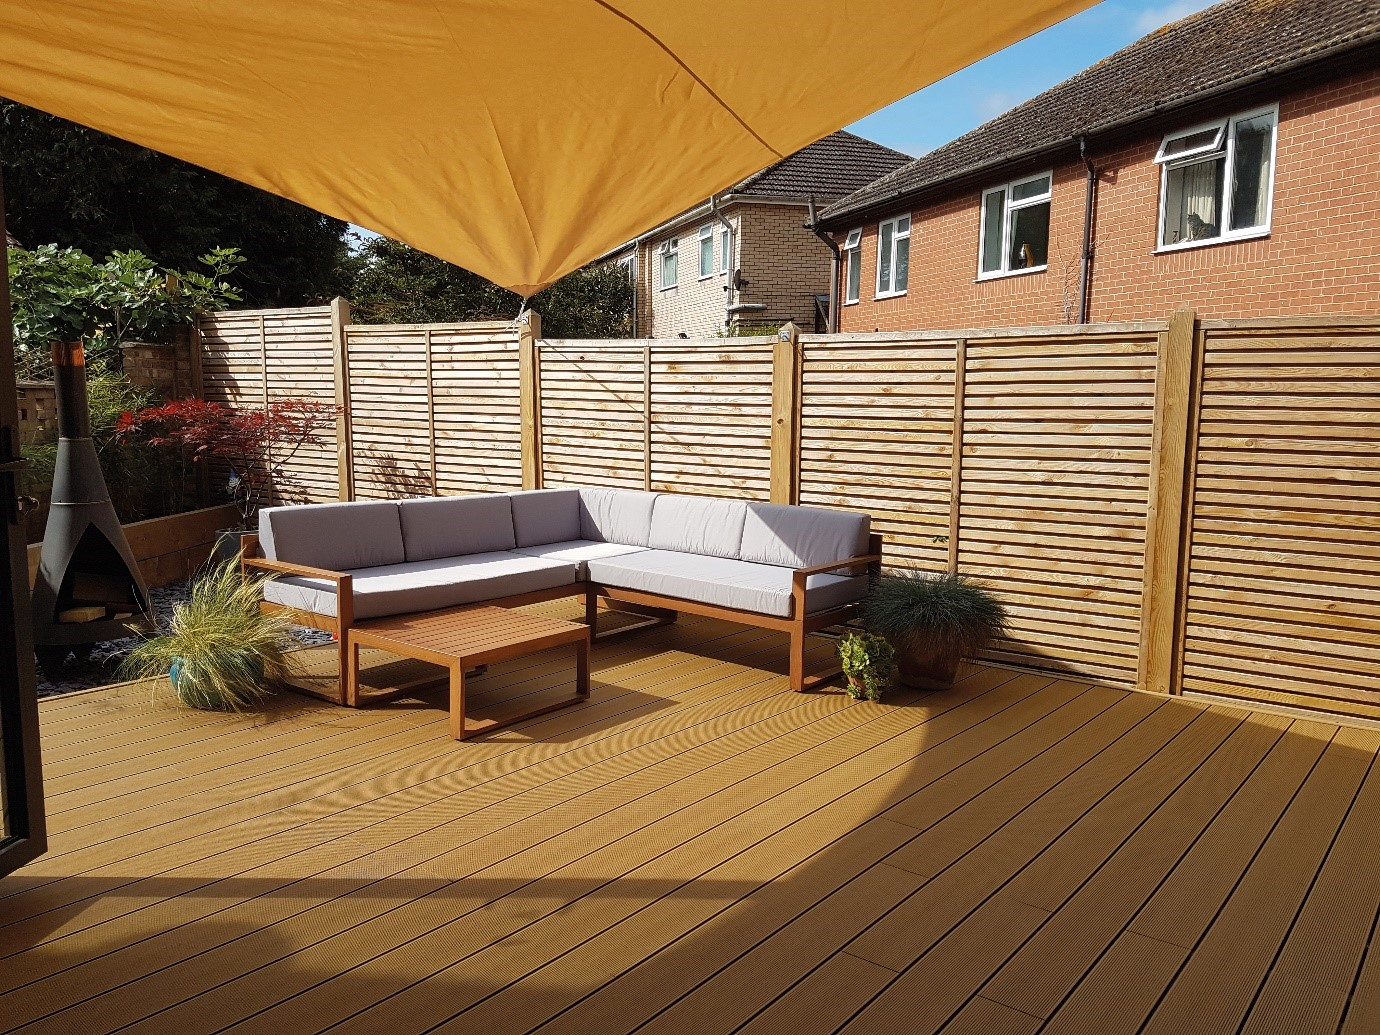 Hollow vs solid composite decking, what's the difference?